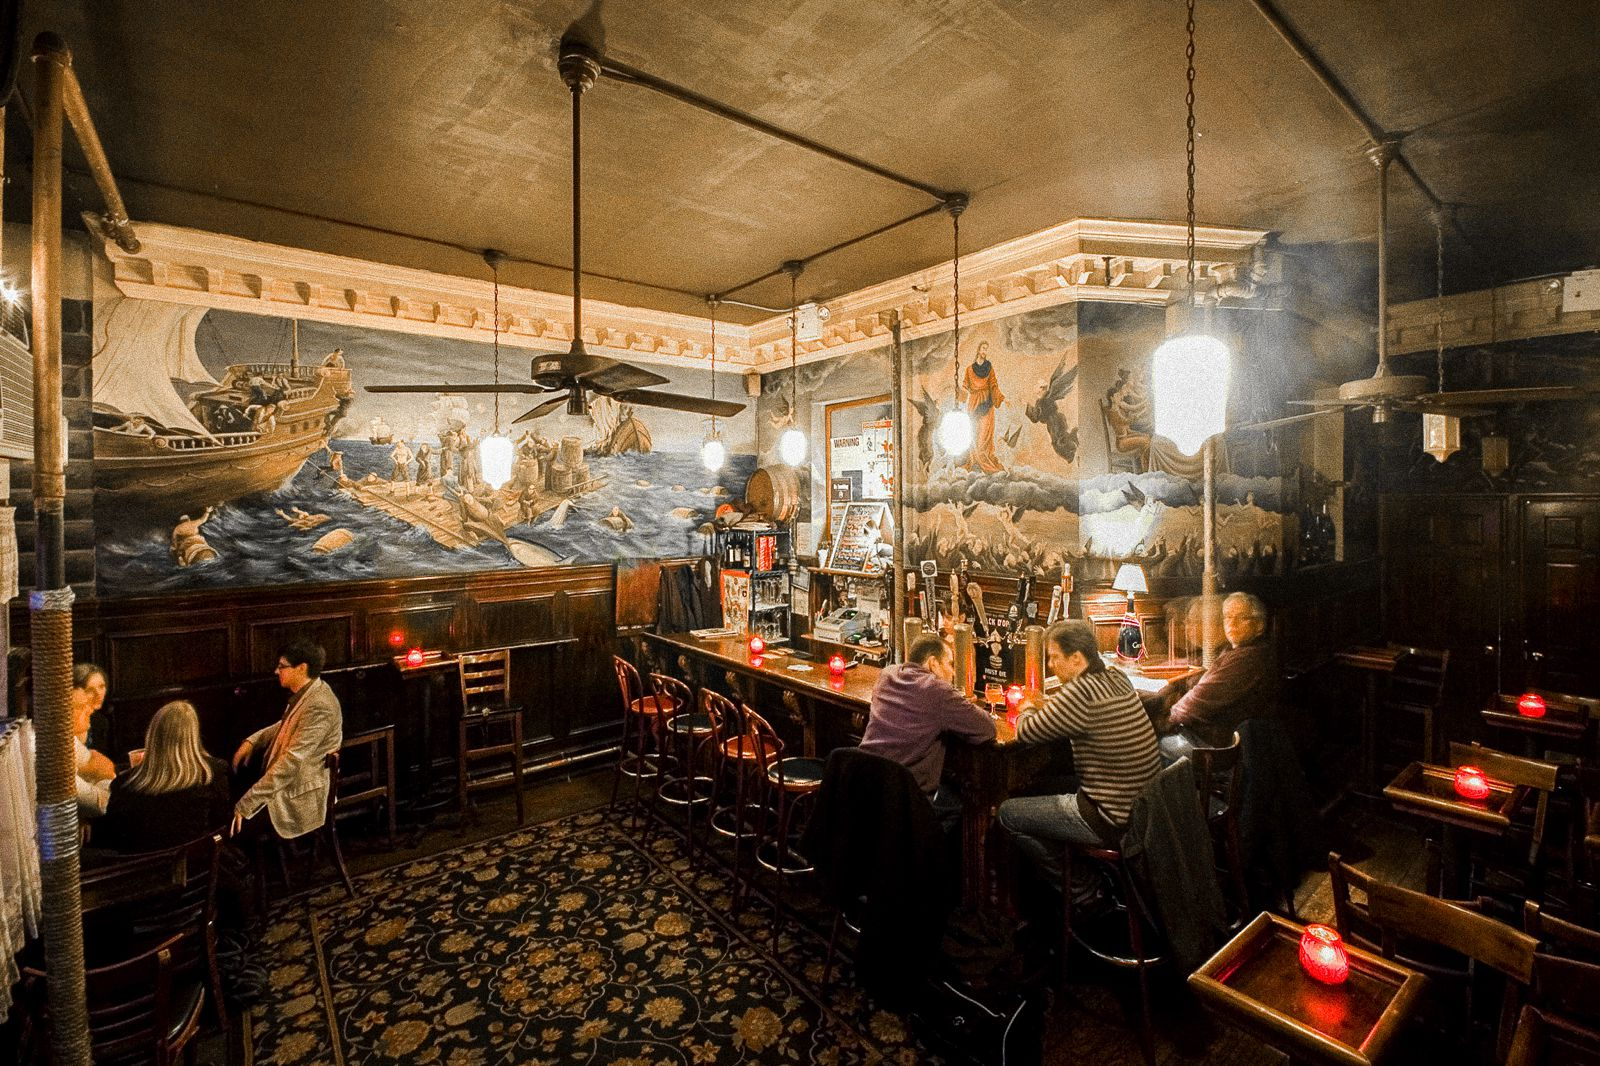 Unusual places to eat in new york city 12 jpg